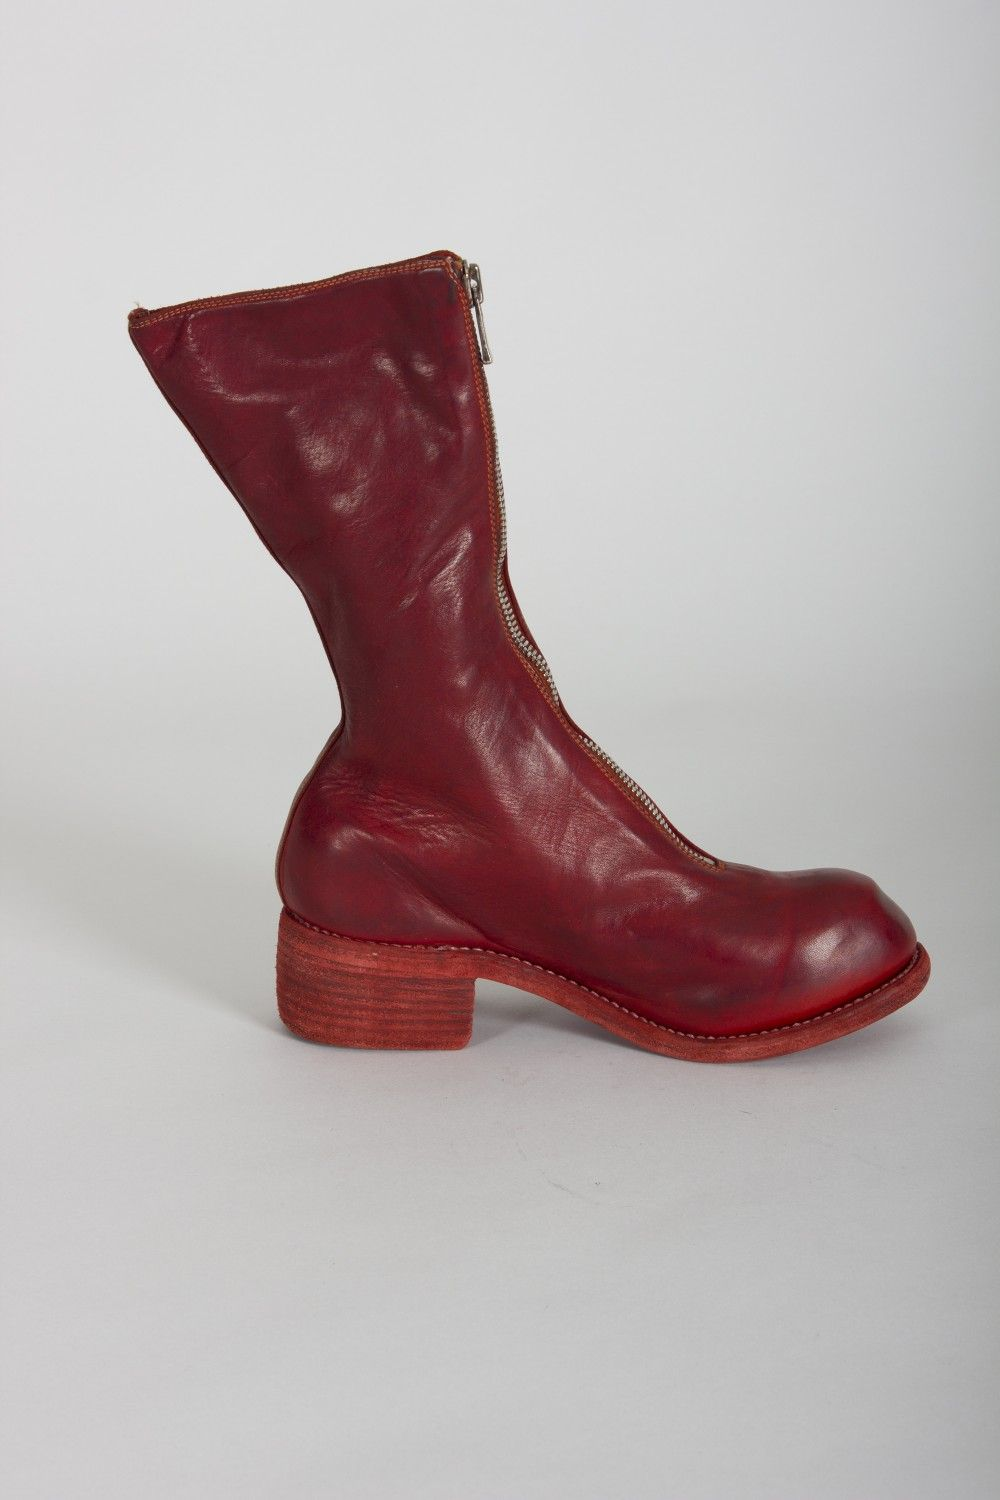 Pl9 1006t red horse full grain front zip boots | Boots